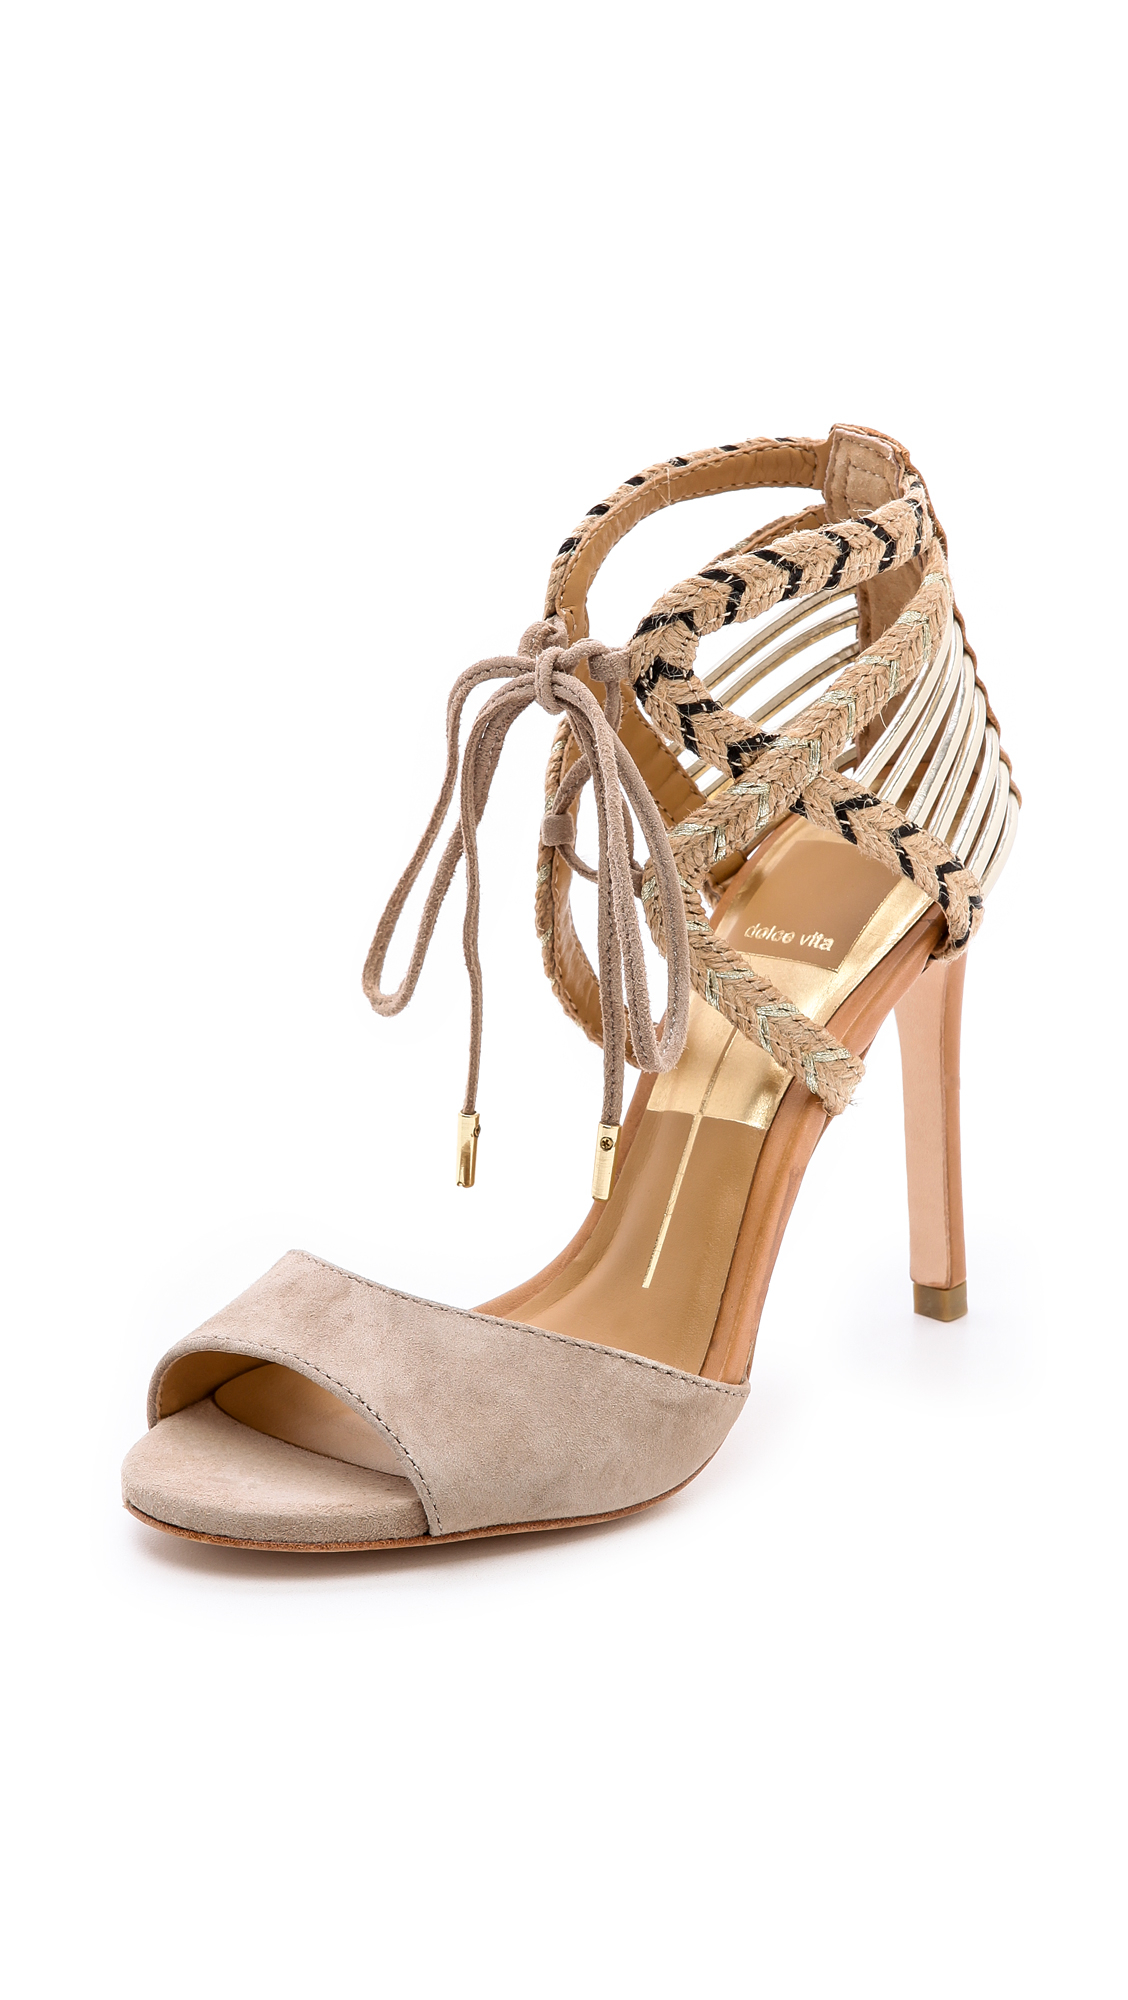 Dolce Vita Hexen Lace Up Sandals In Beige Nude Lyst